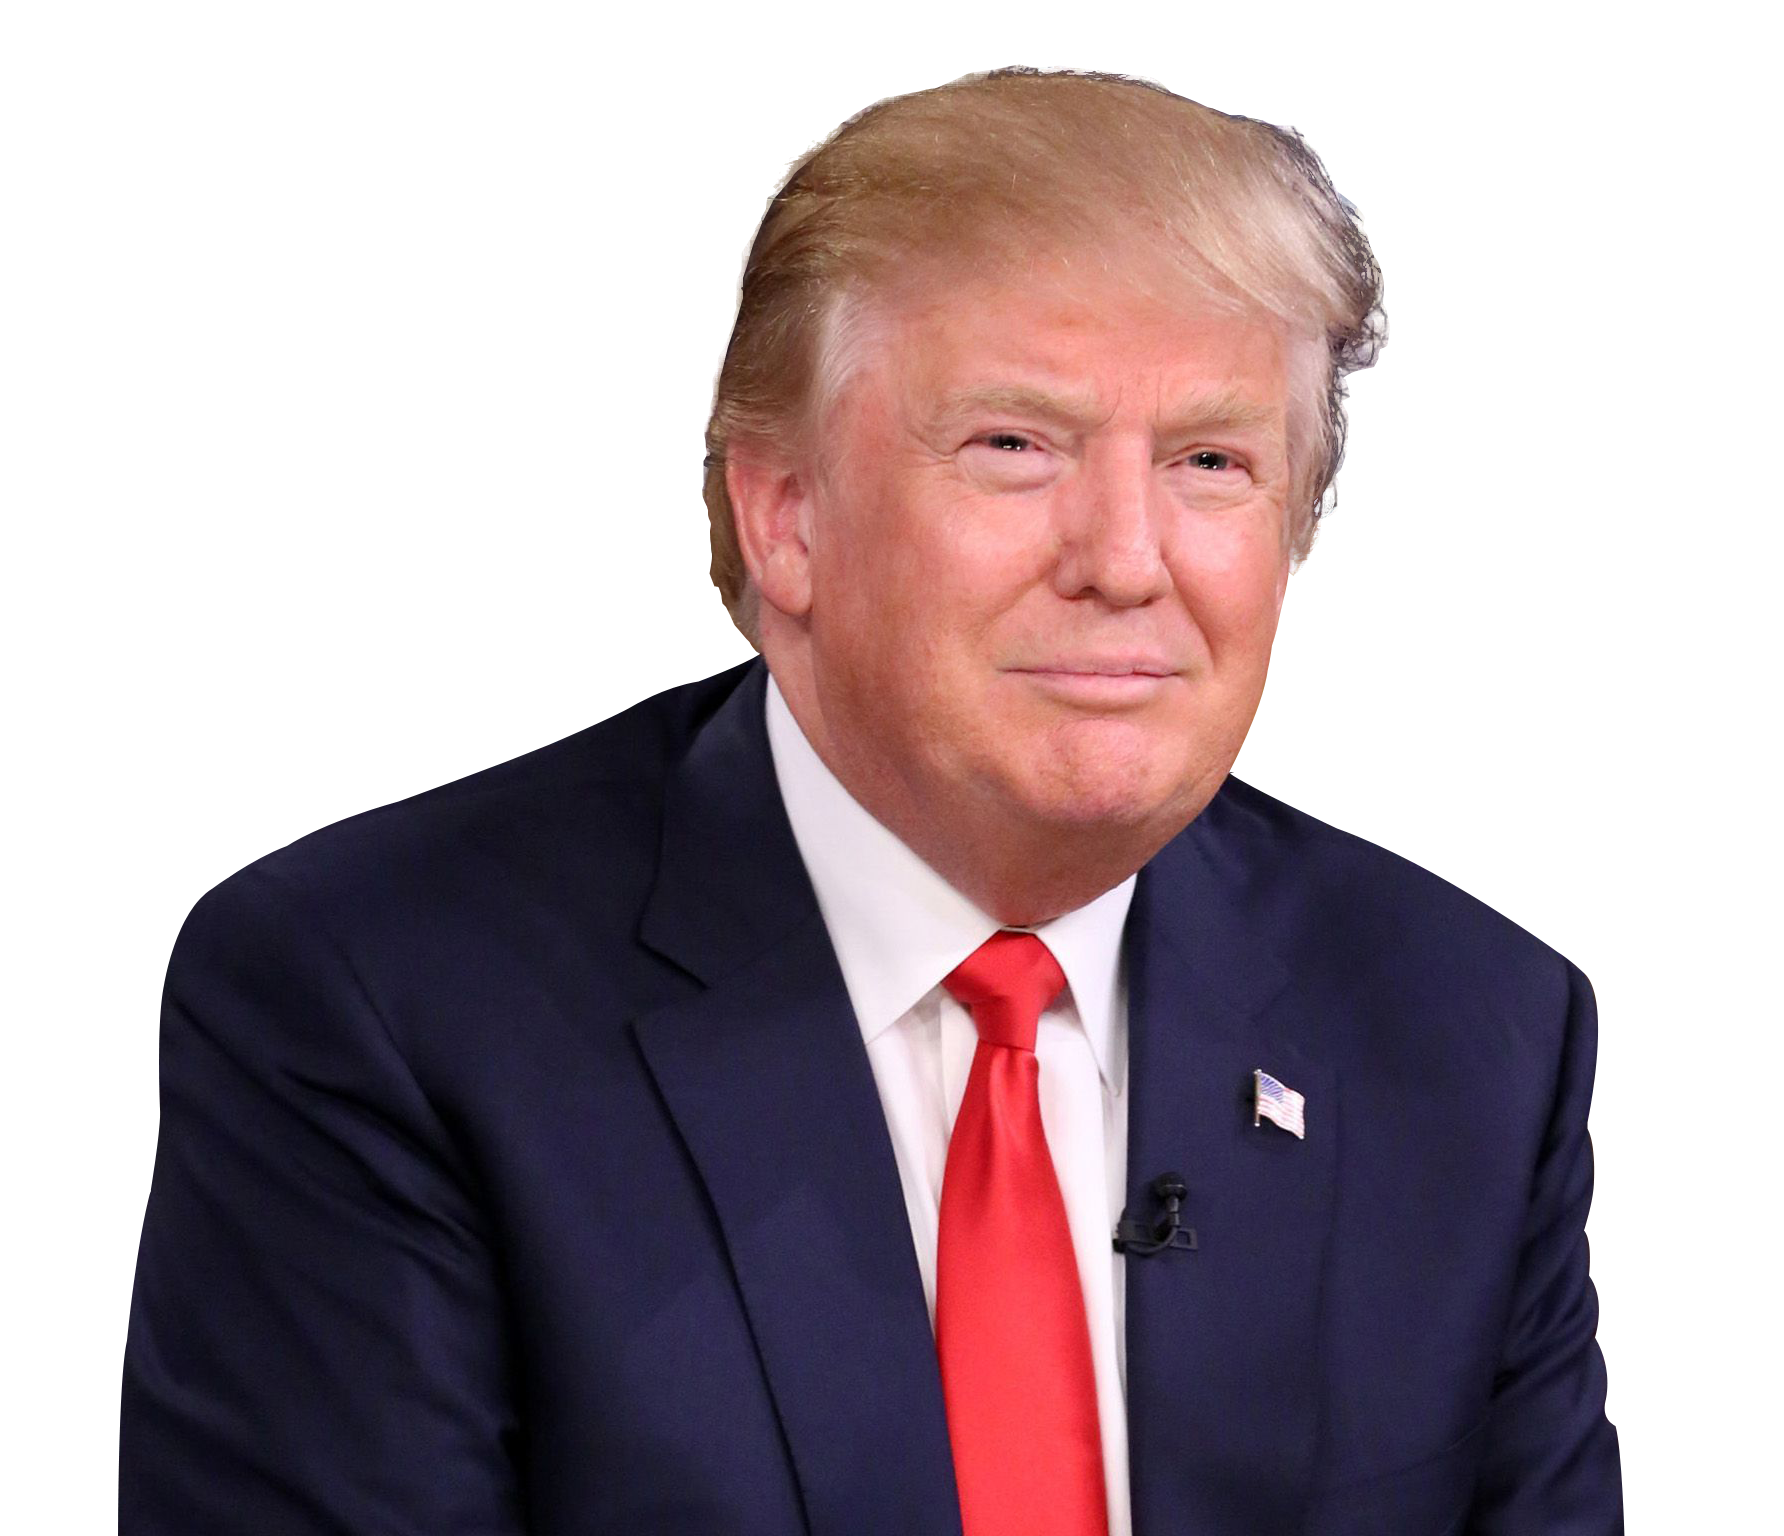 Now you can download Donald Trump Icon Clipart